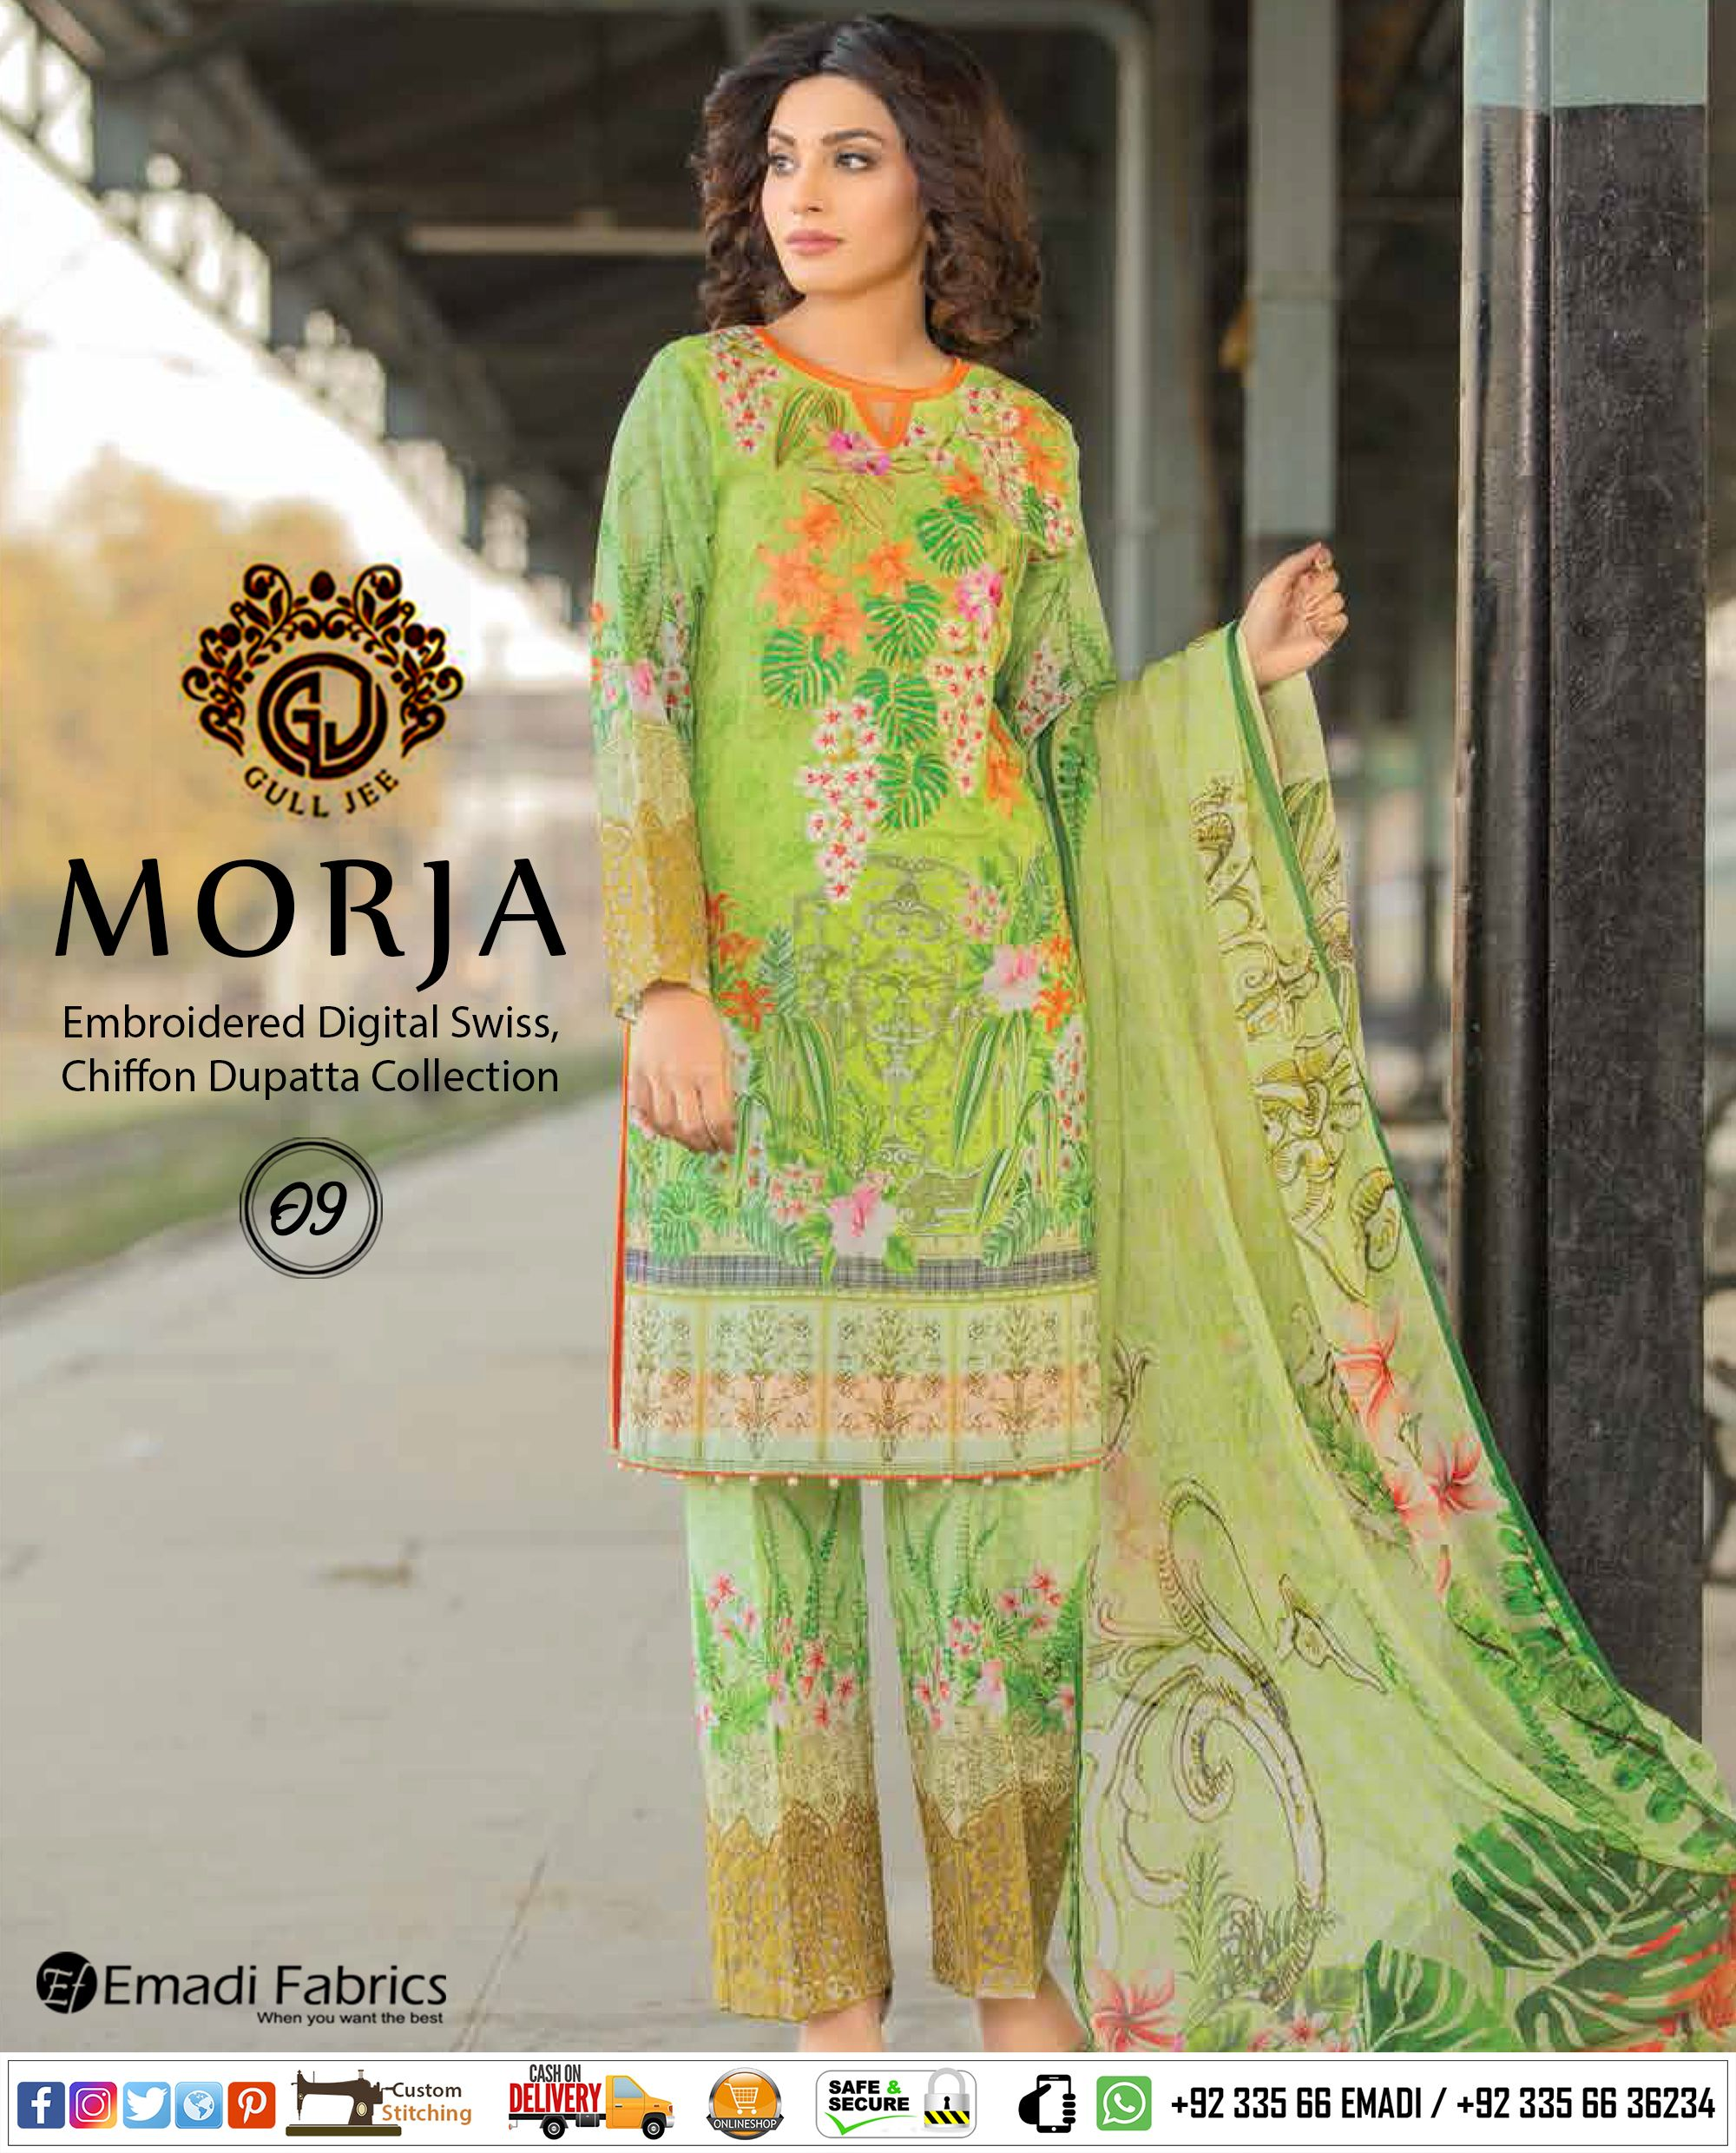 f152685f67 #GULJEE - MORJA EMBROIDERED DIGITAL SWISS, CHIFFON DUPATTA COLLECTION.  AVAILABLE AT EMADI FABRICS